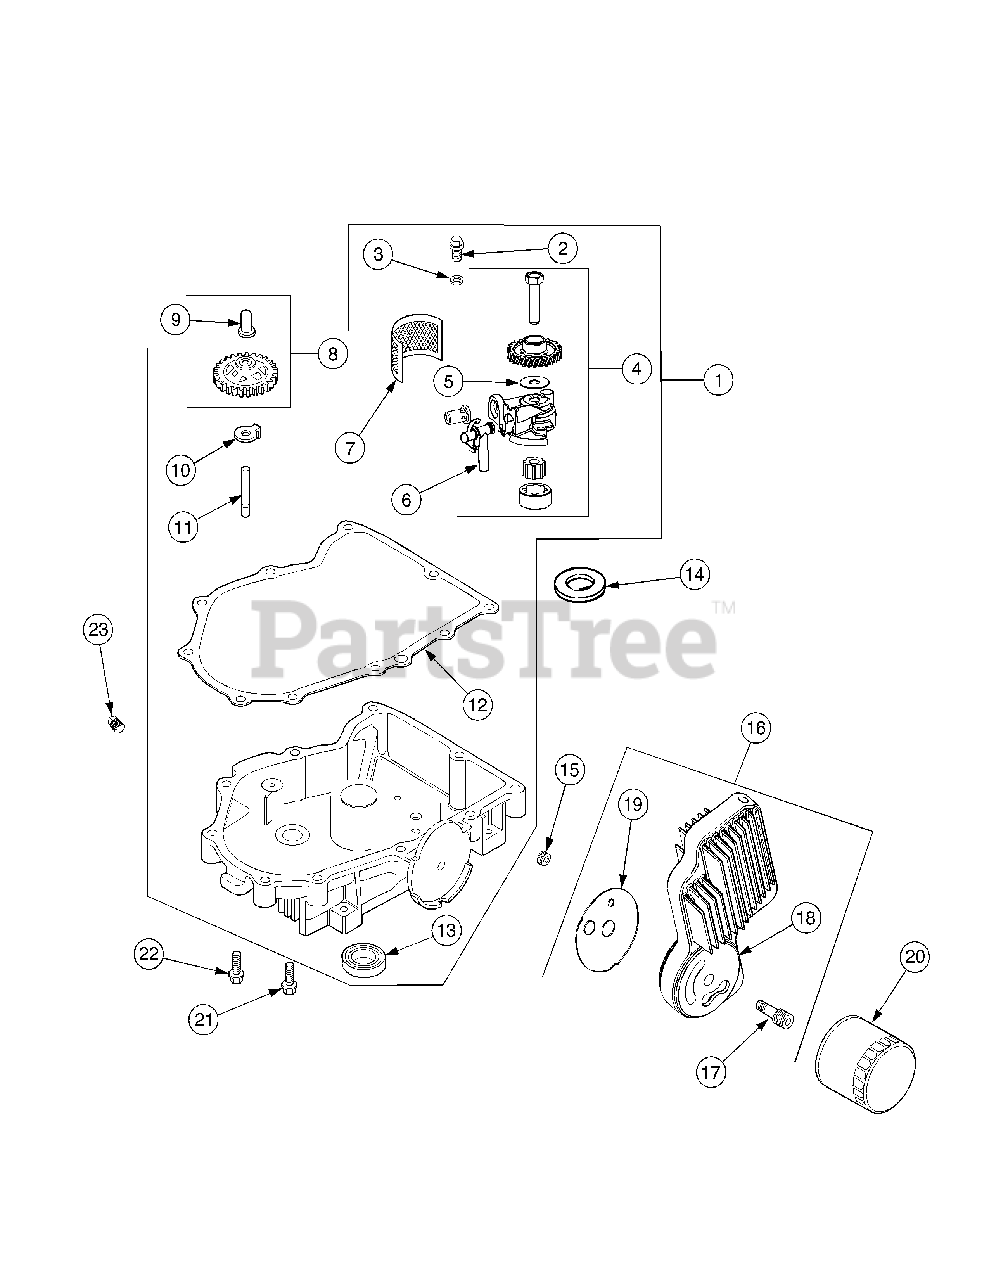 Cub Cadet Parts on the Oil Pan Lubrication Diagram for SLT